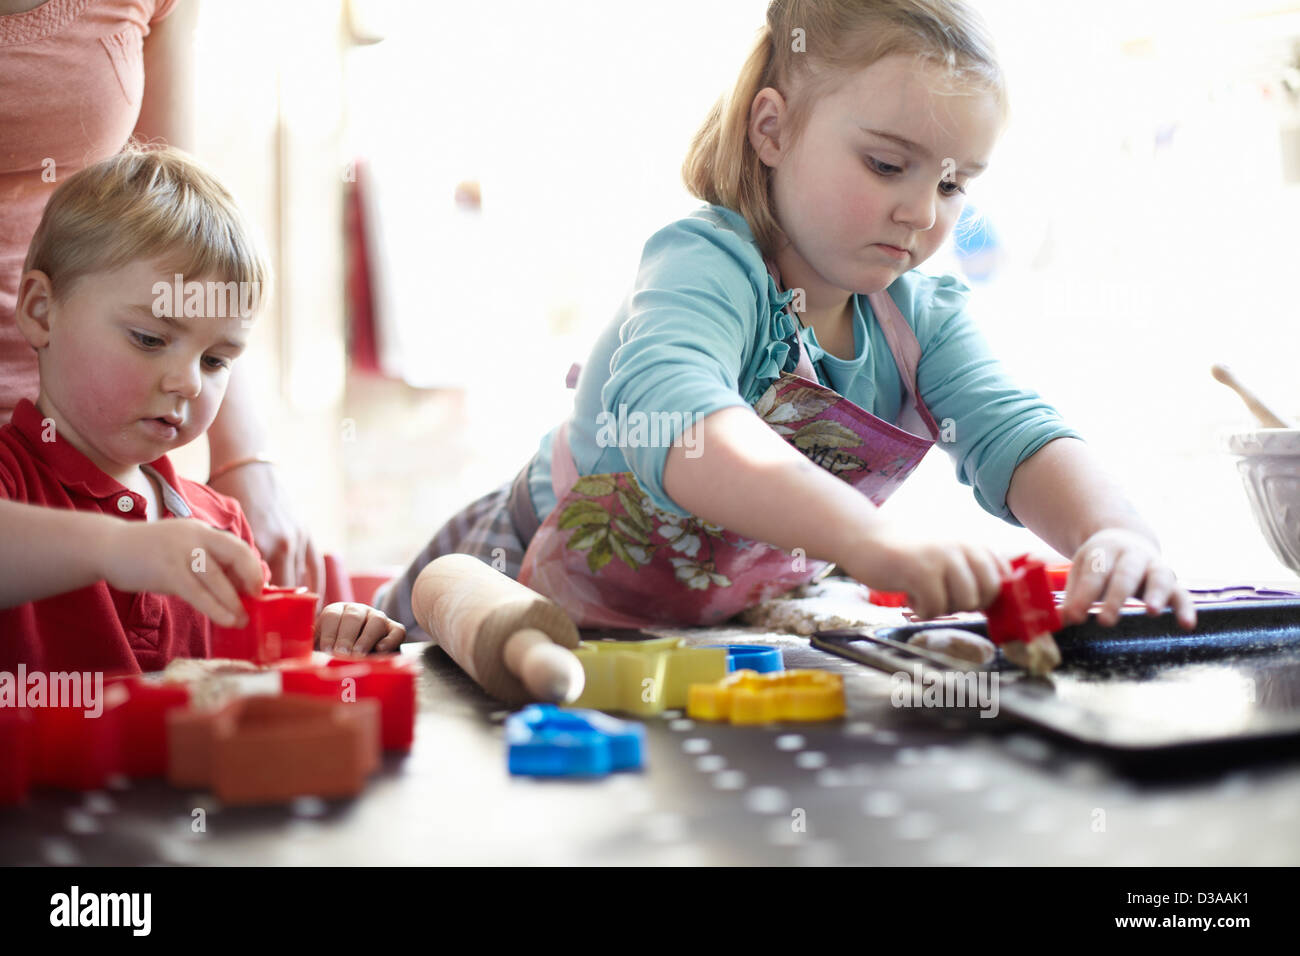 Children playing with shapes on table - Stock Image